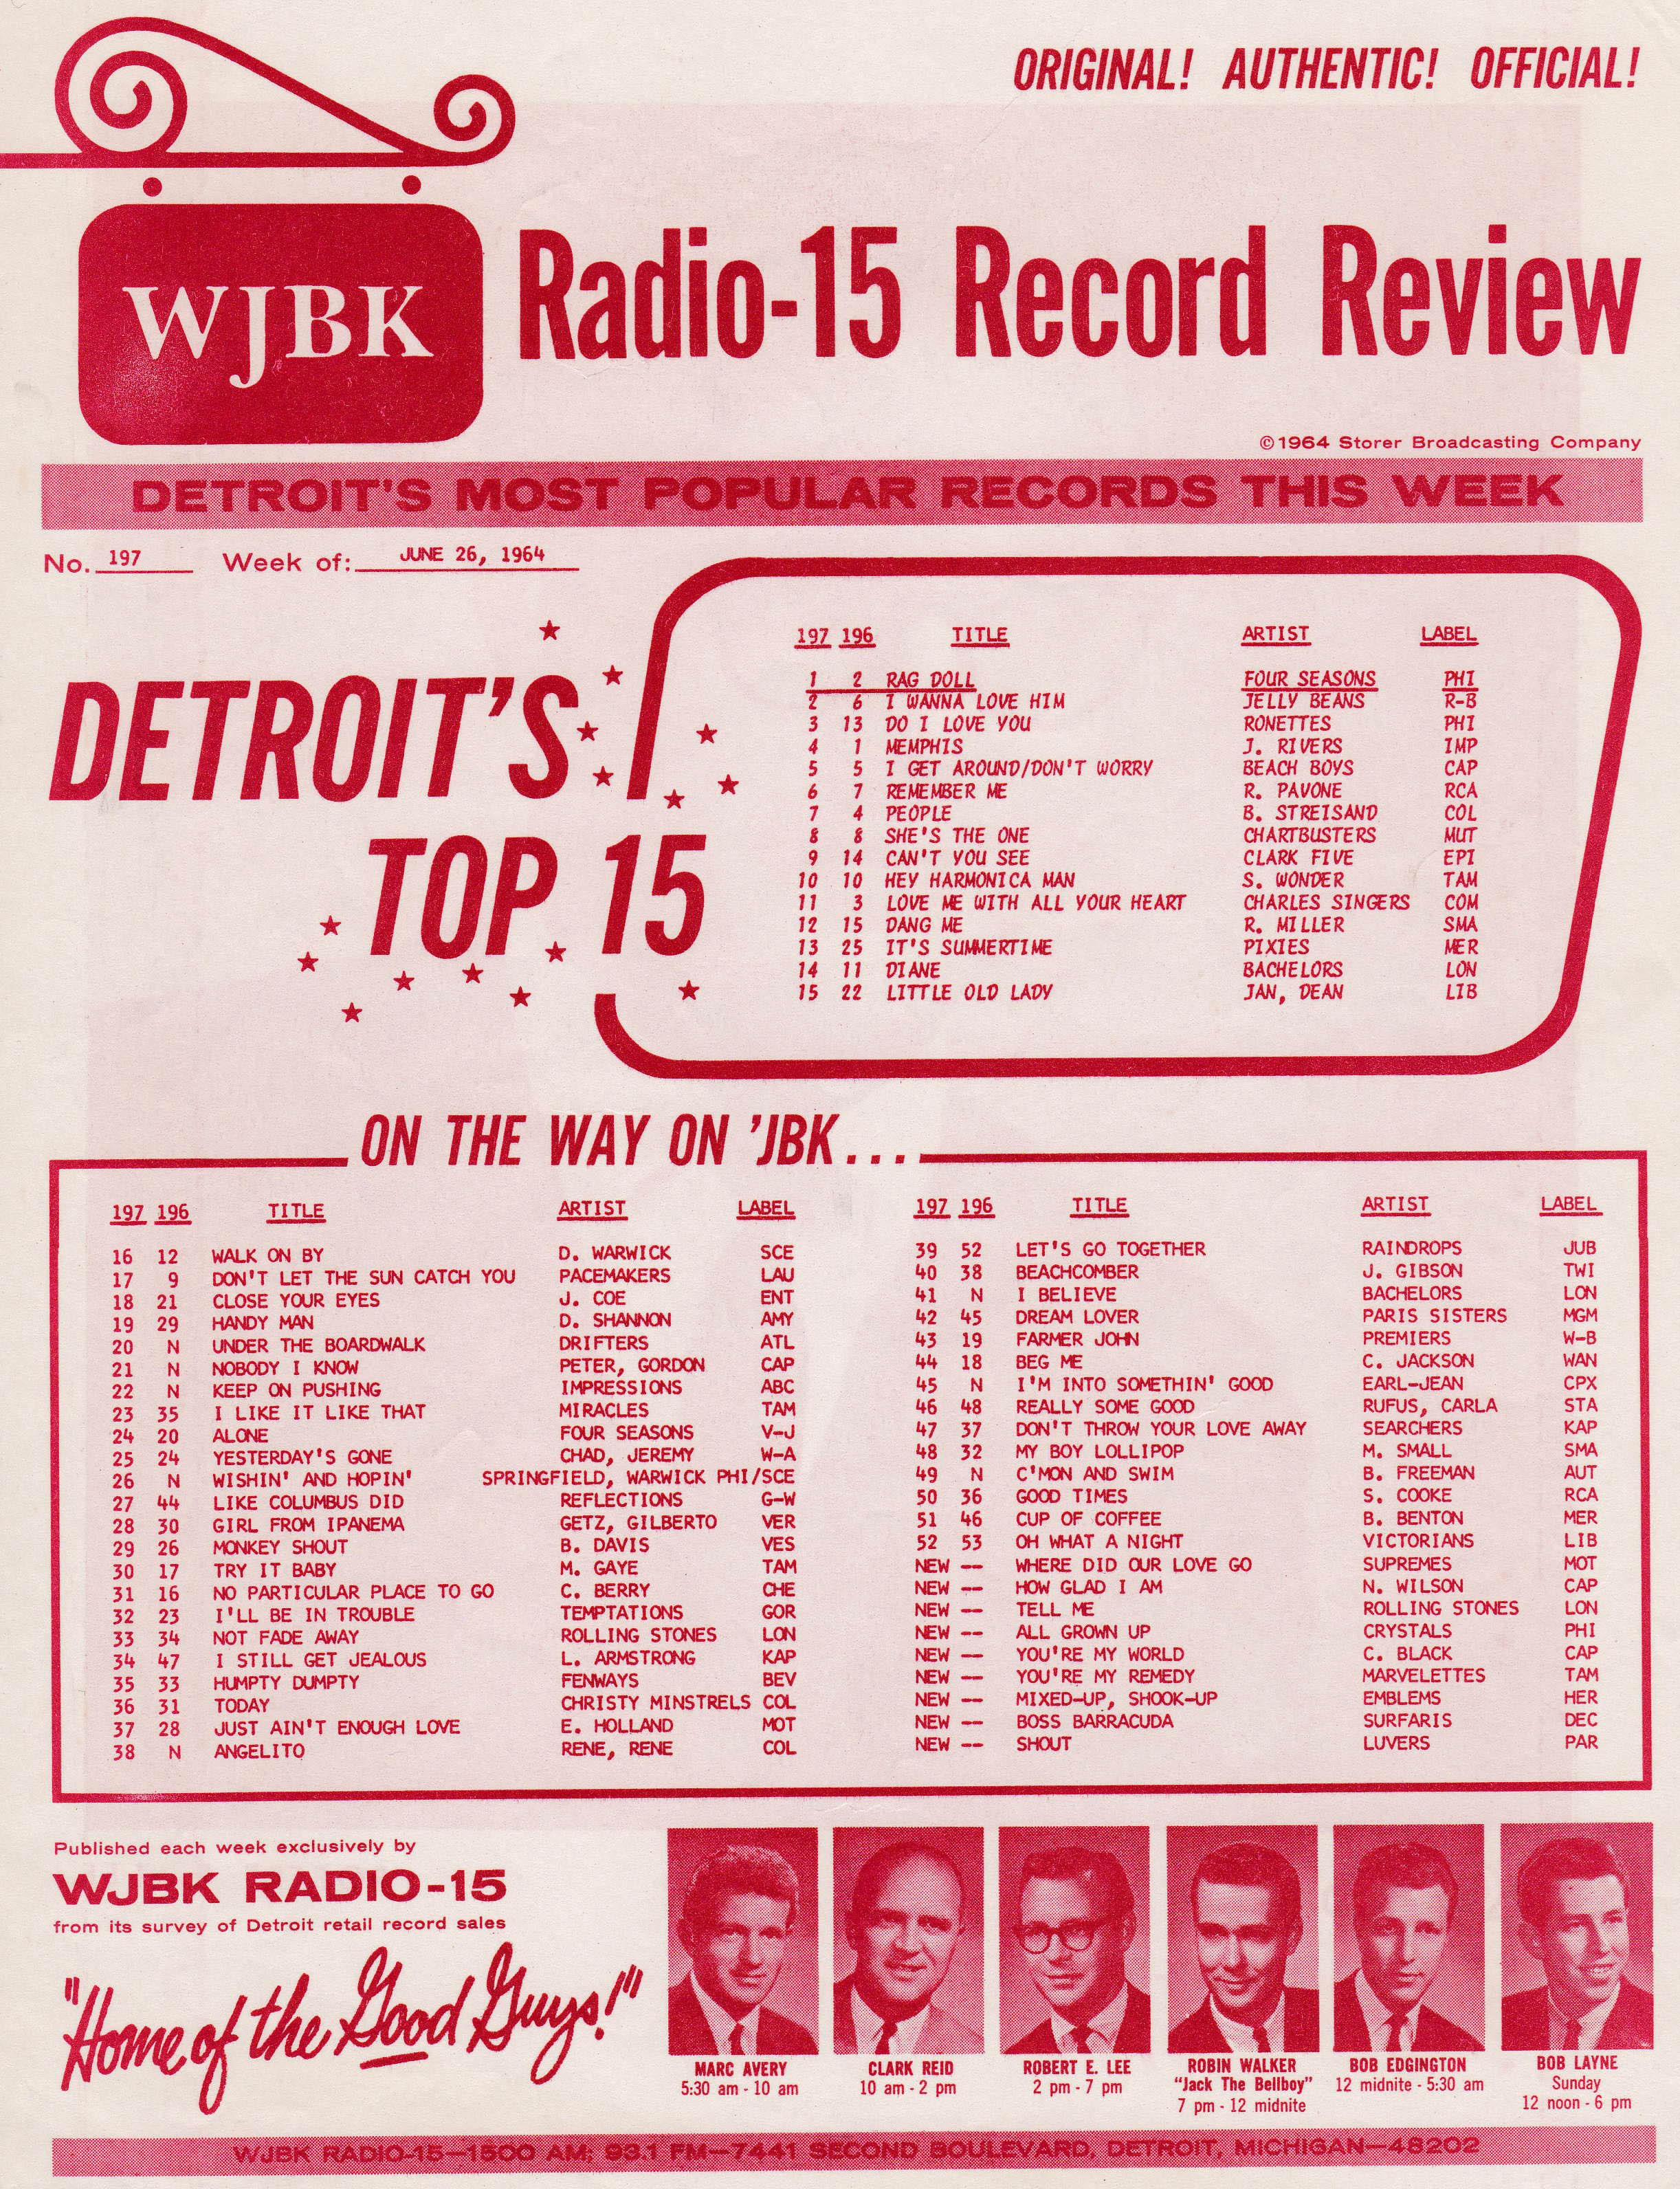 WJBK SURVEY - JUNE 26, 1964 - FRONT